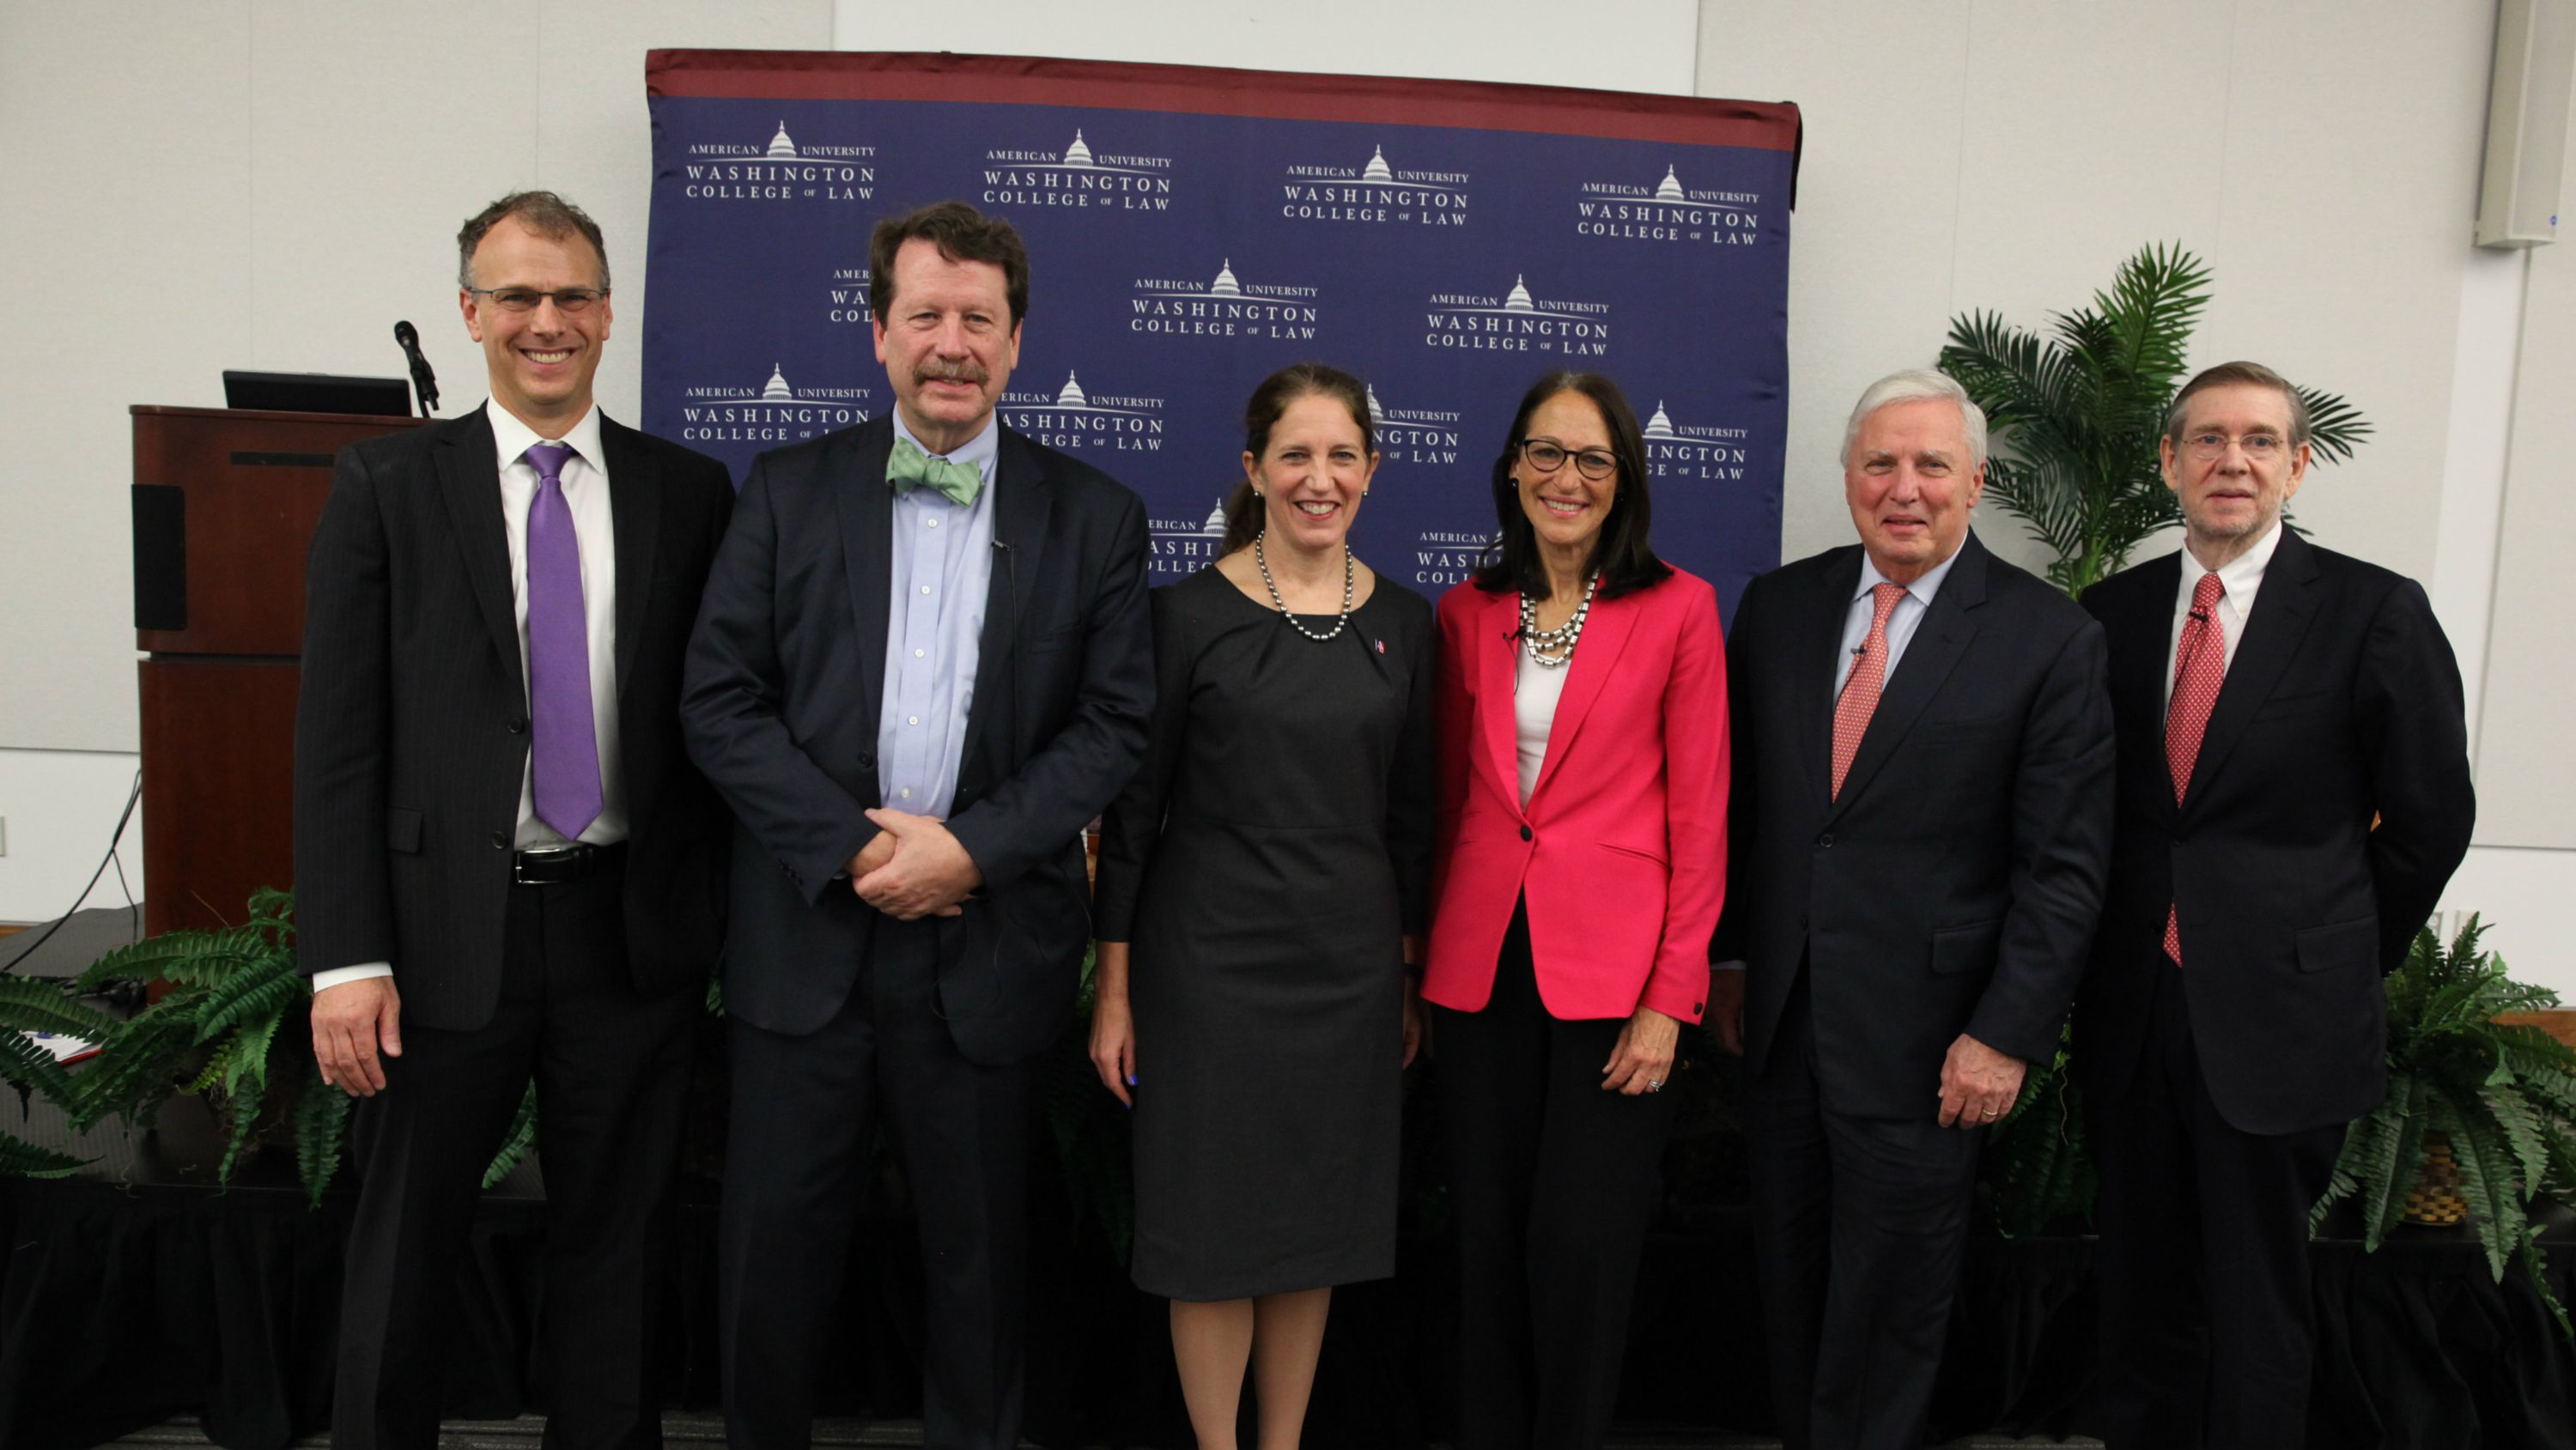 AUWCL and the Food and Drug Law Institute Hosts FDA Conference